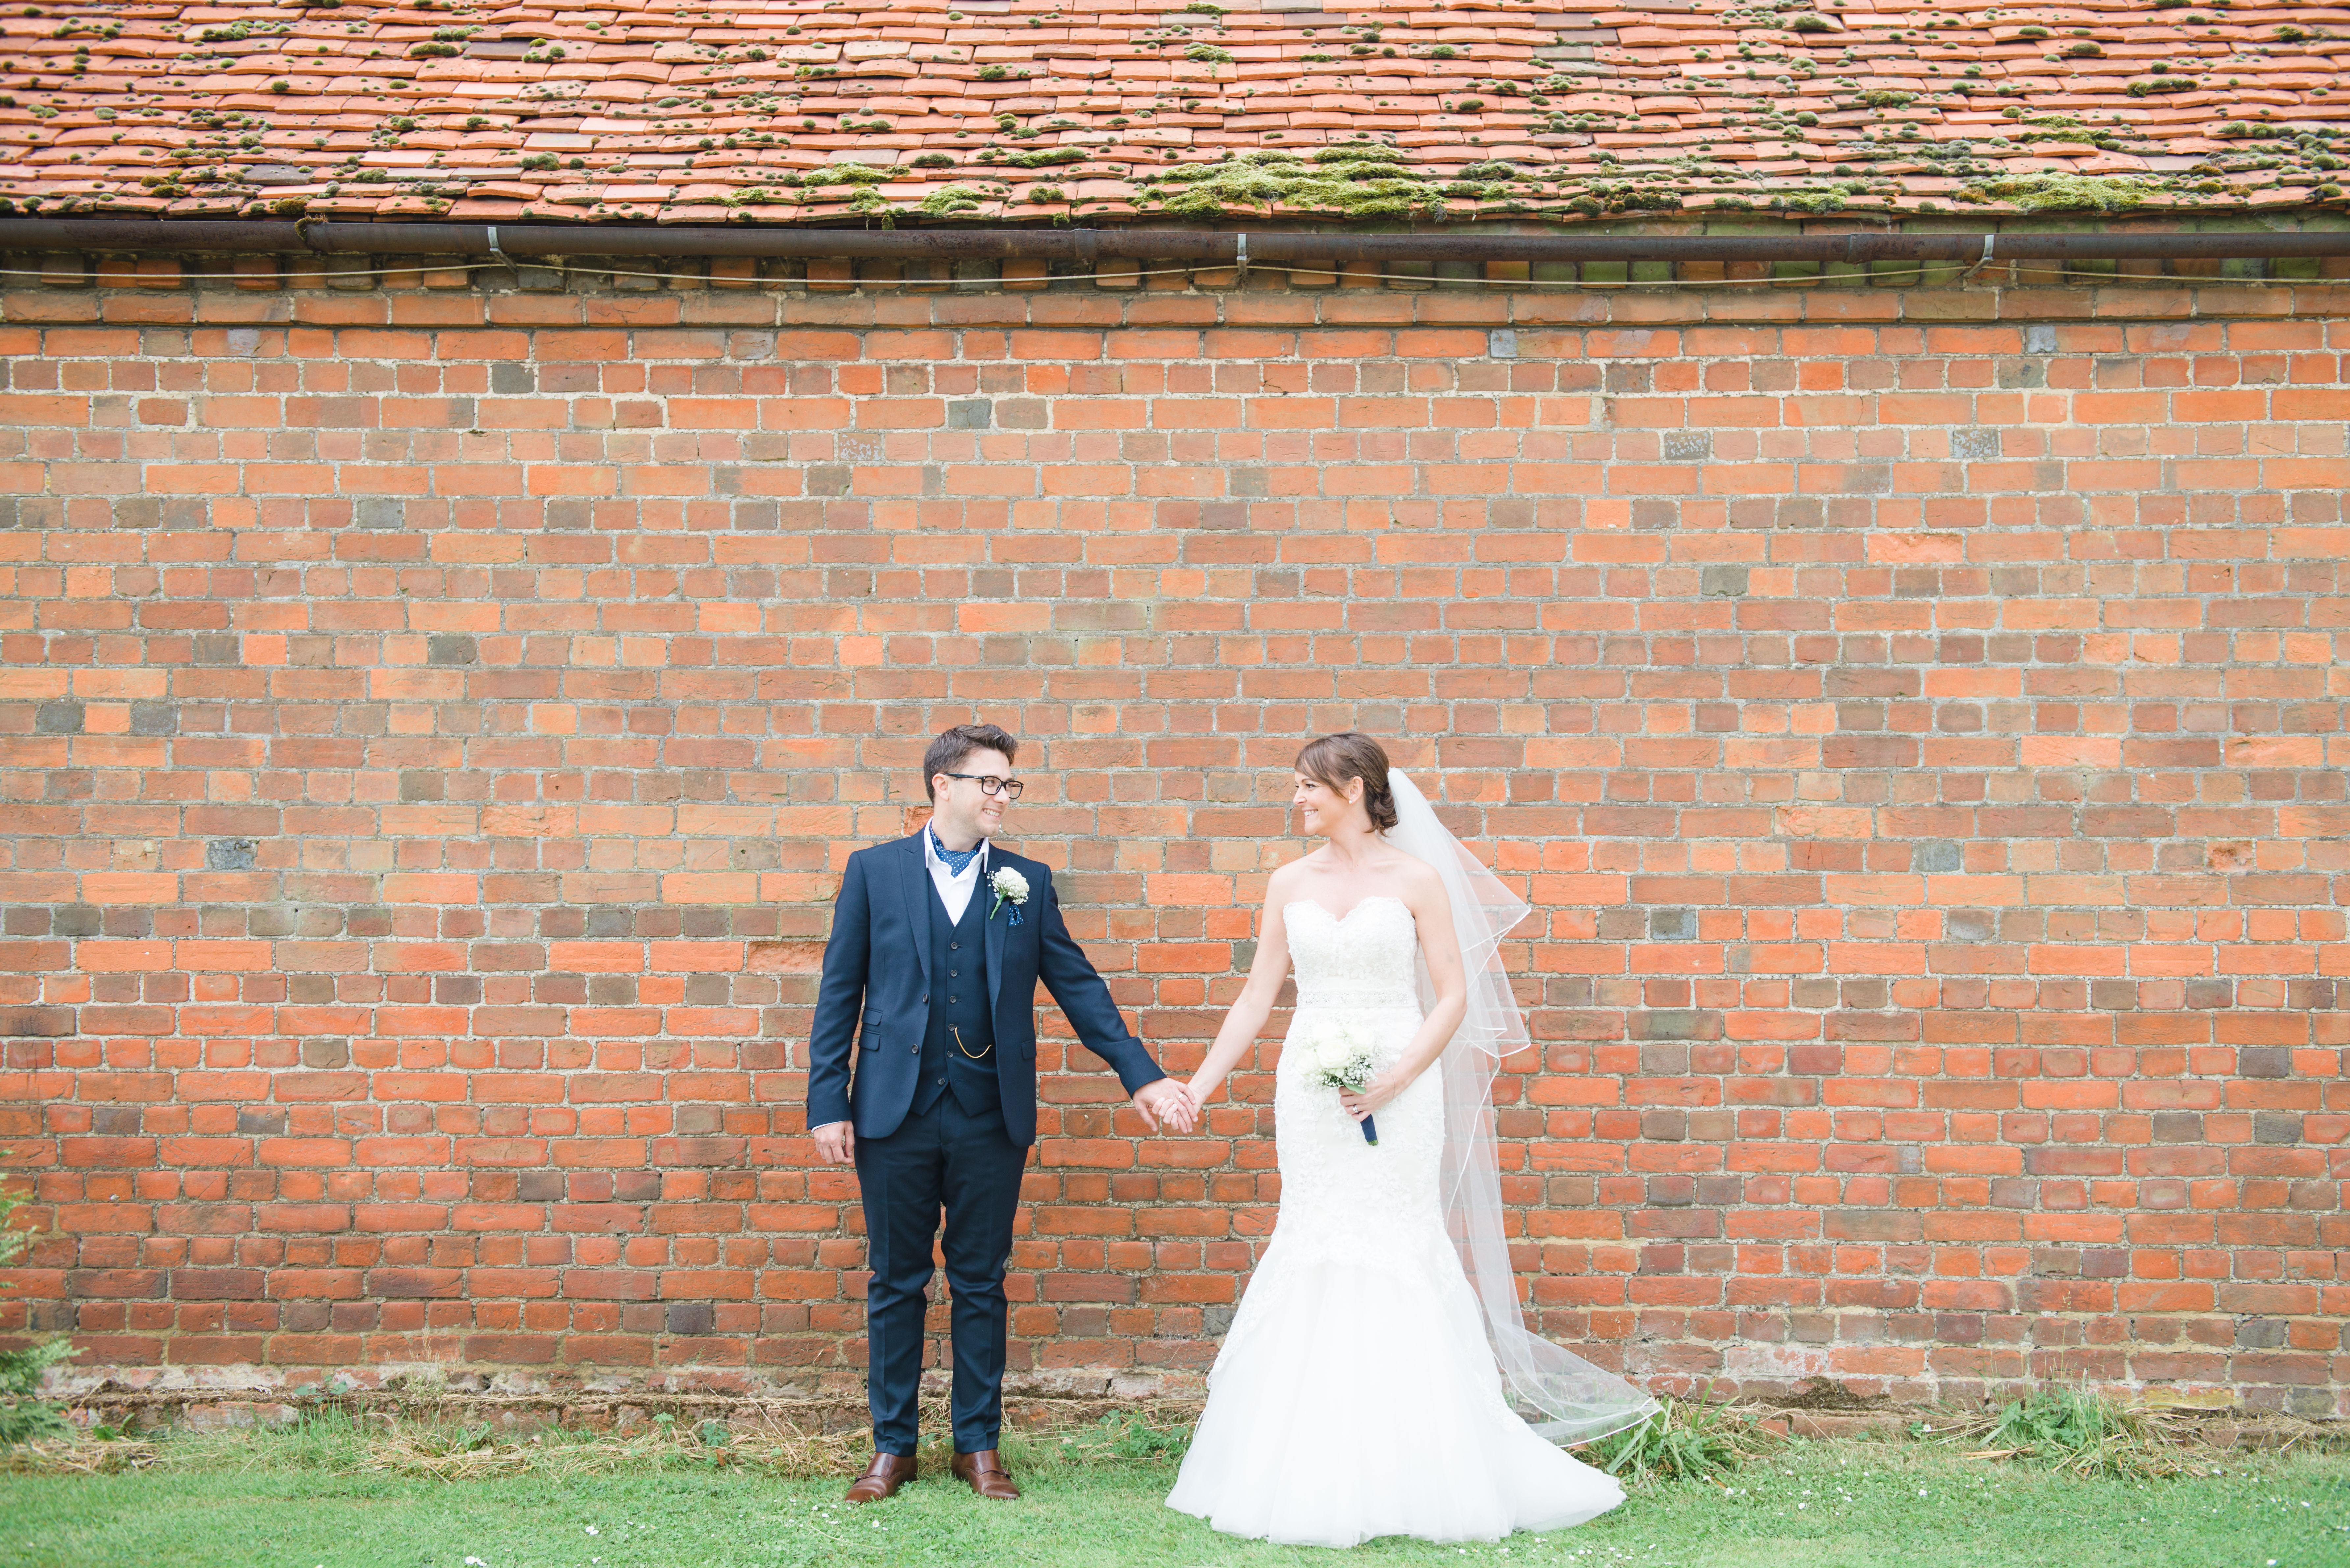 Hannah McClune Photography. A back drop of red brick for this shot.